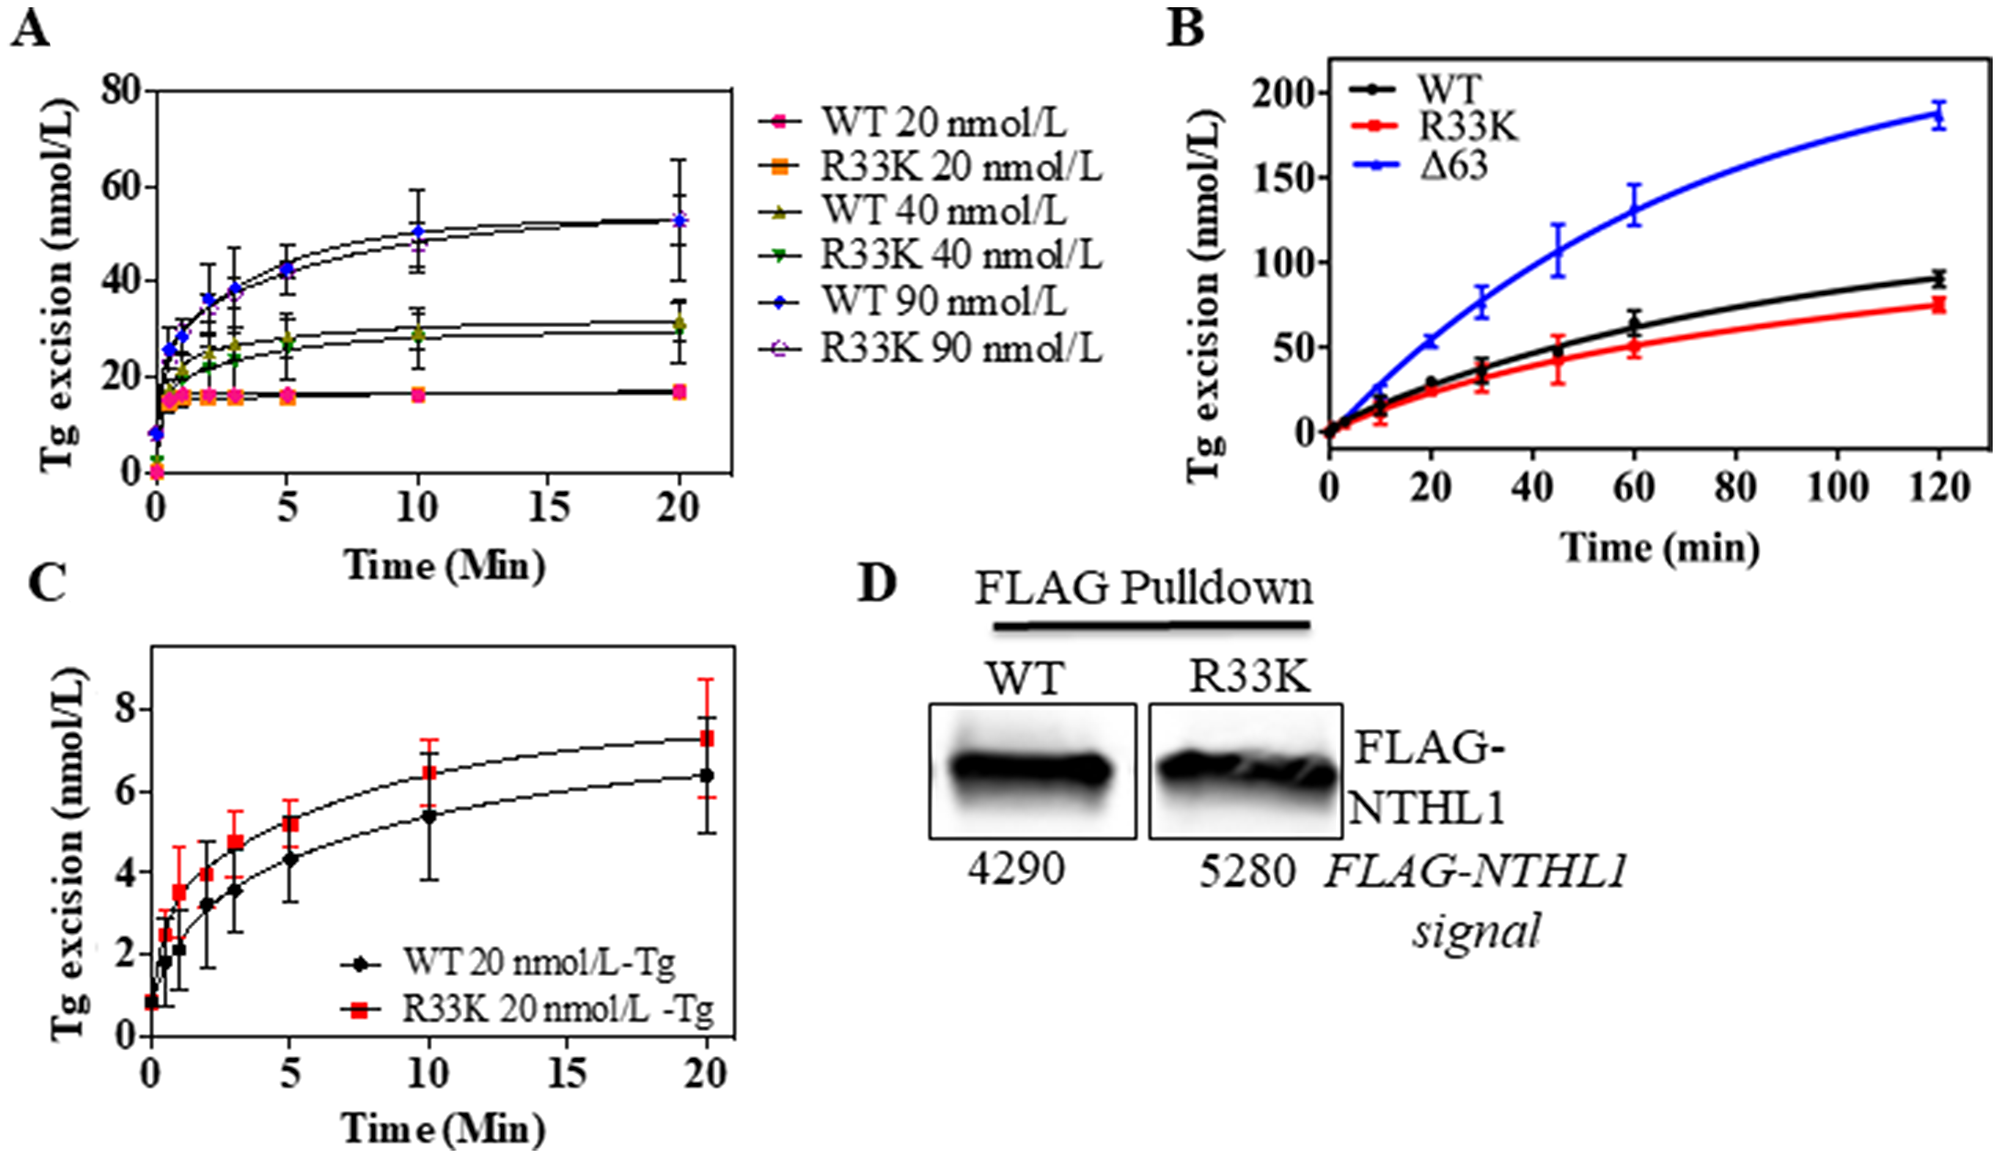 Wt- and R33K-NTHL1 proteins exhibit similar enzyme kinetics.